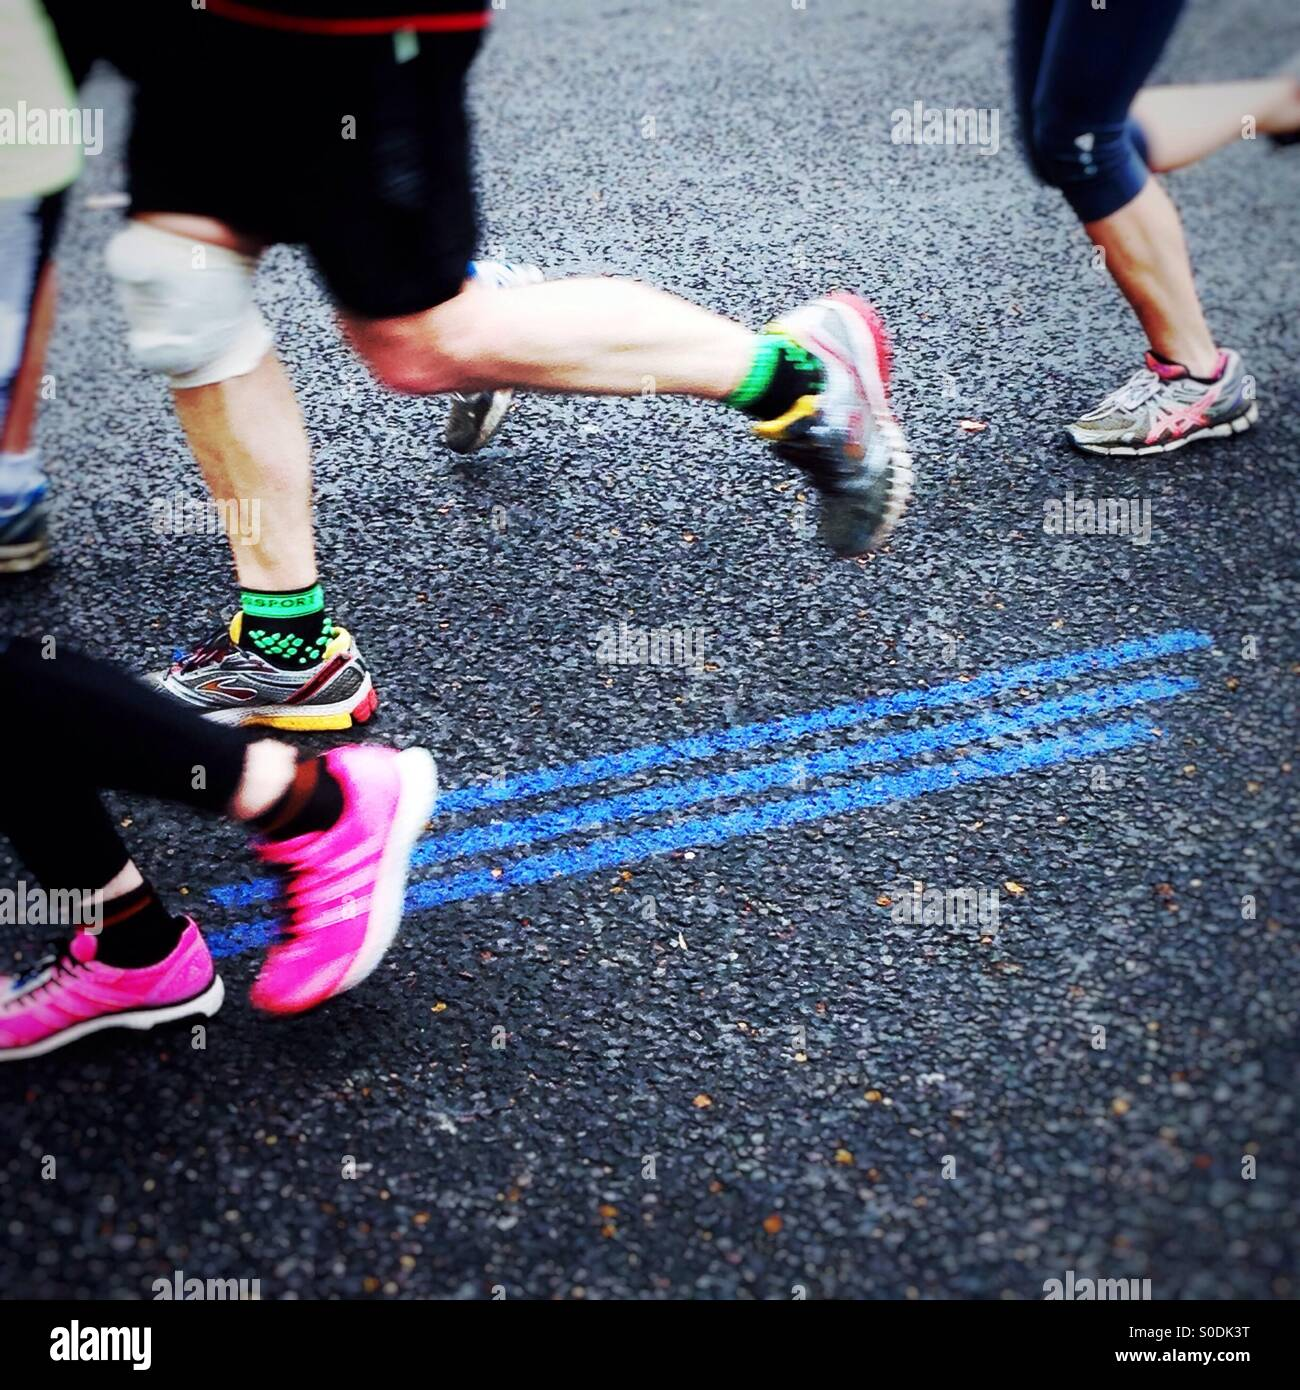 Seguire la linea blu. Soldi VIRGIN LONDON MARATHON 2015 Immagini Stock